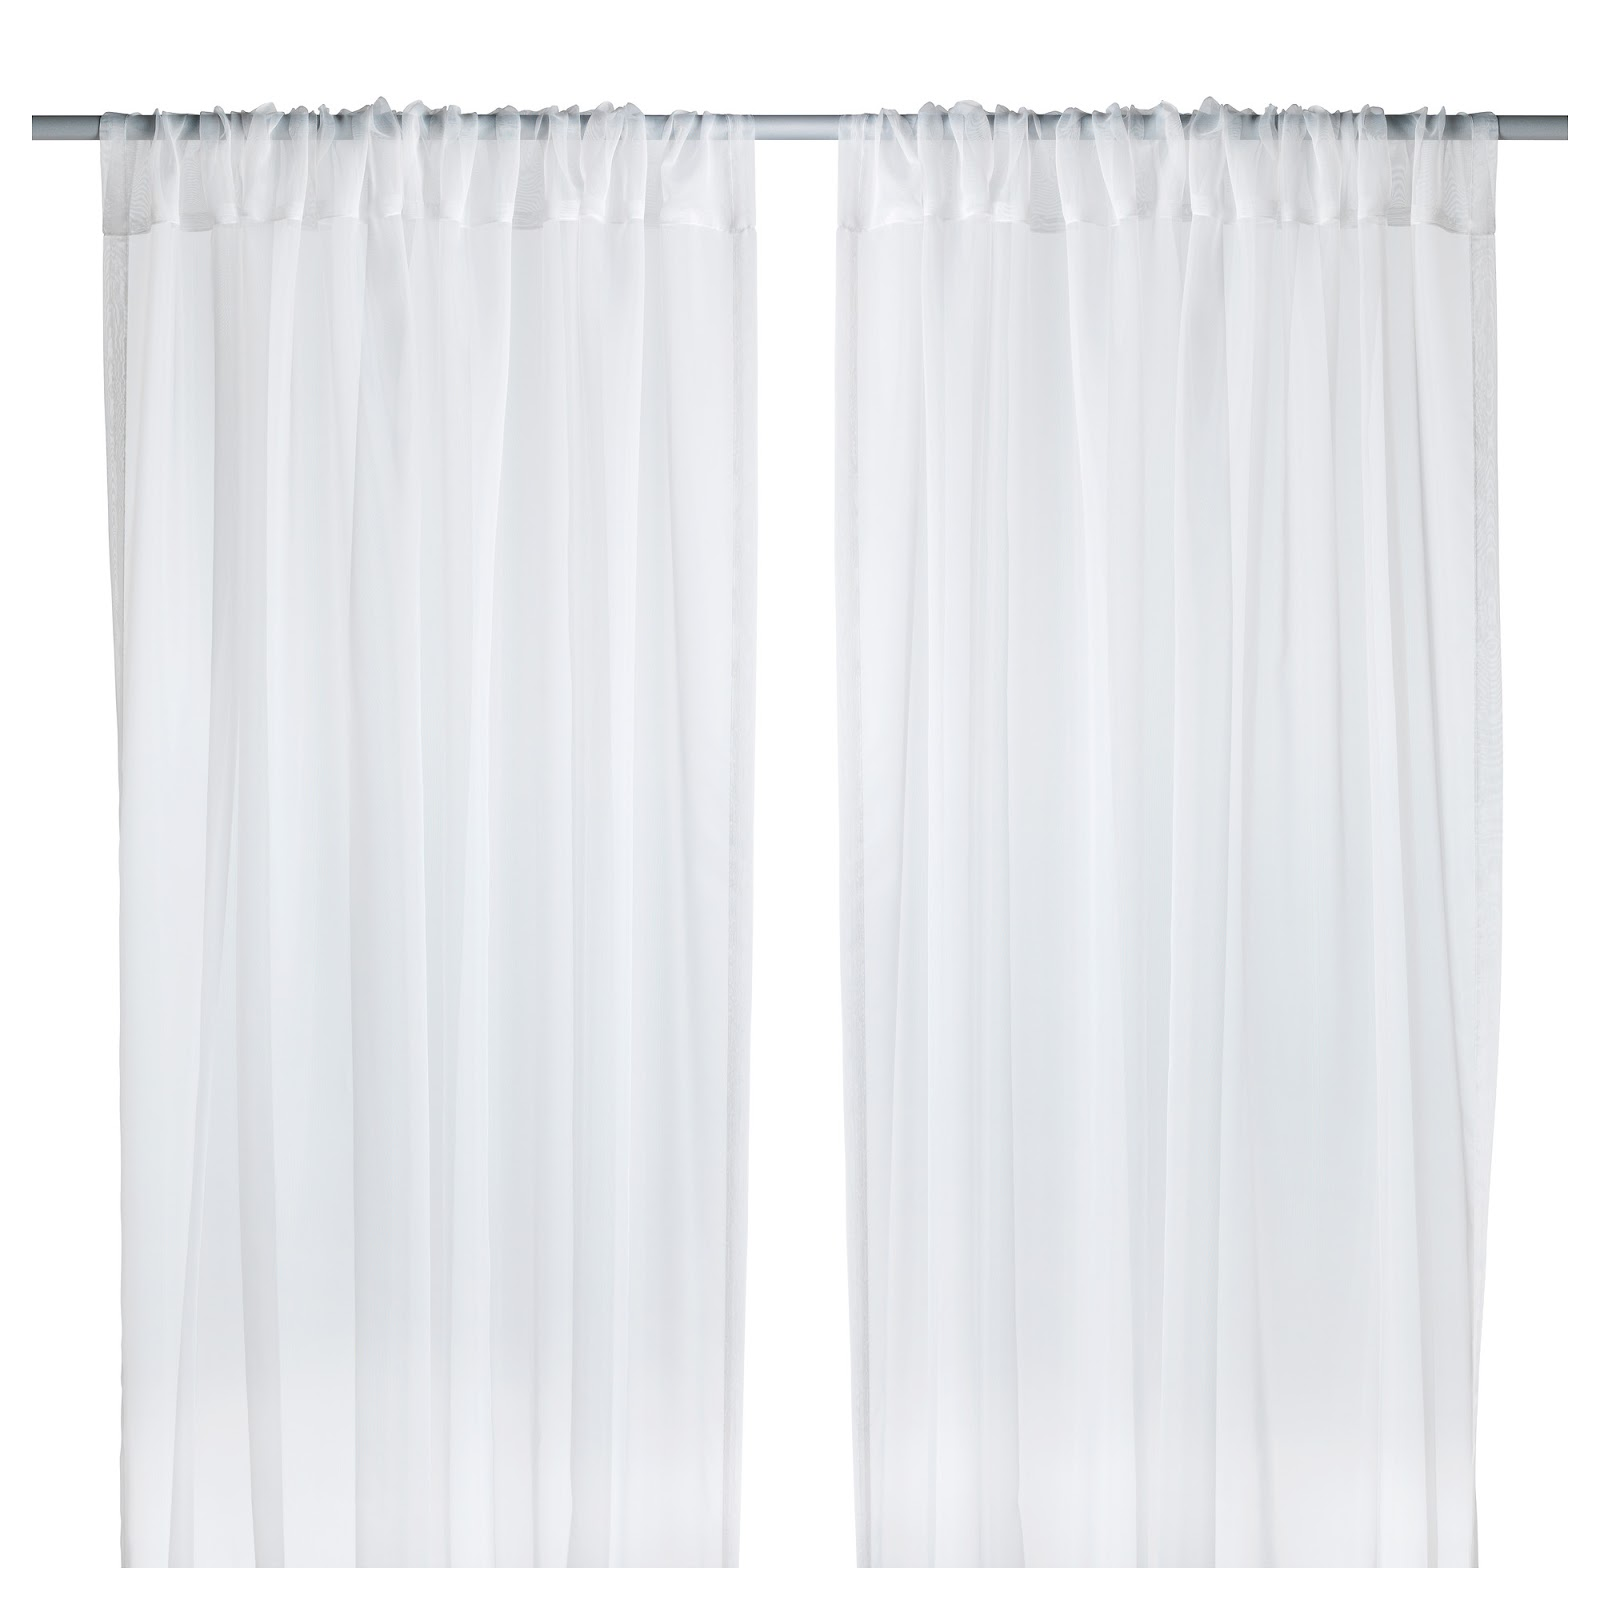 Jcpenney Beaded Curtains Curtain Valances And Drapes Bedroom